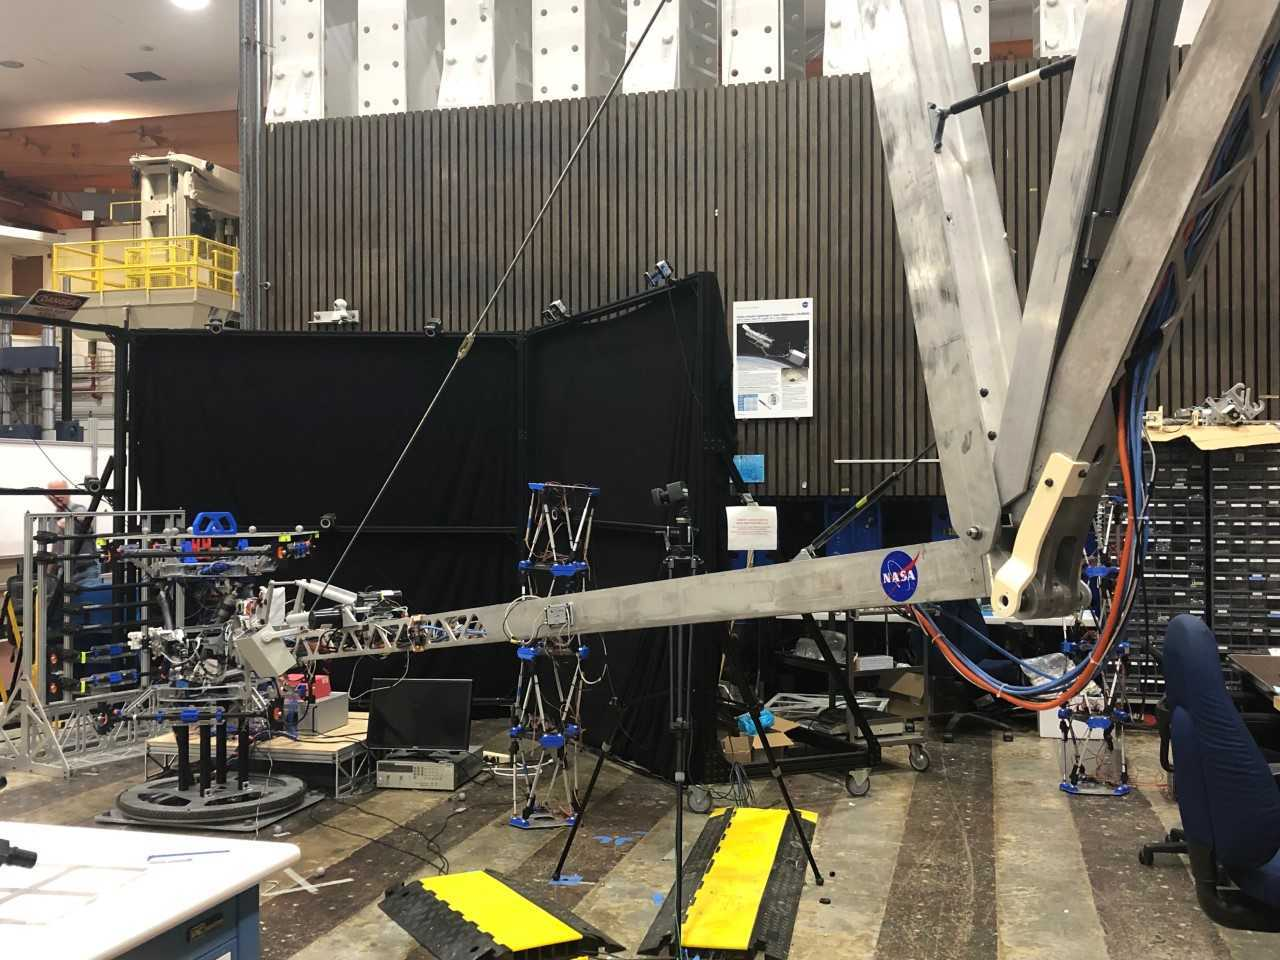 Photos: NASA Langley Research Center technology helps human exploration of the Moon